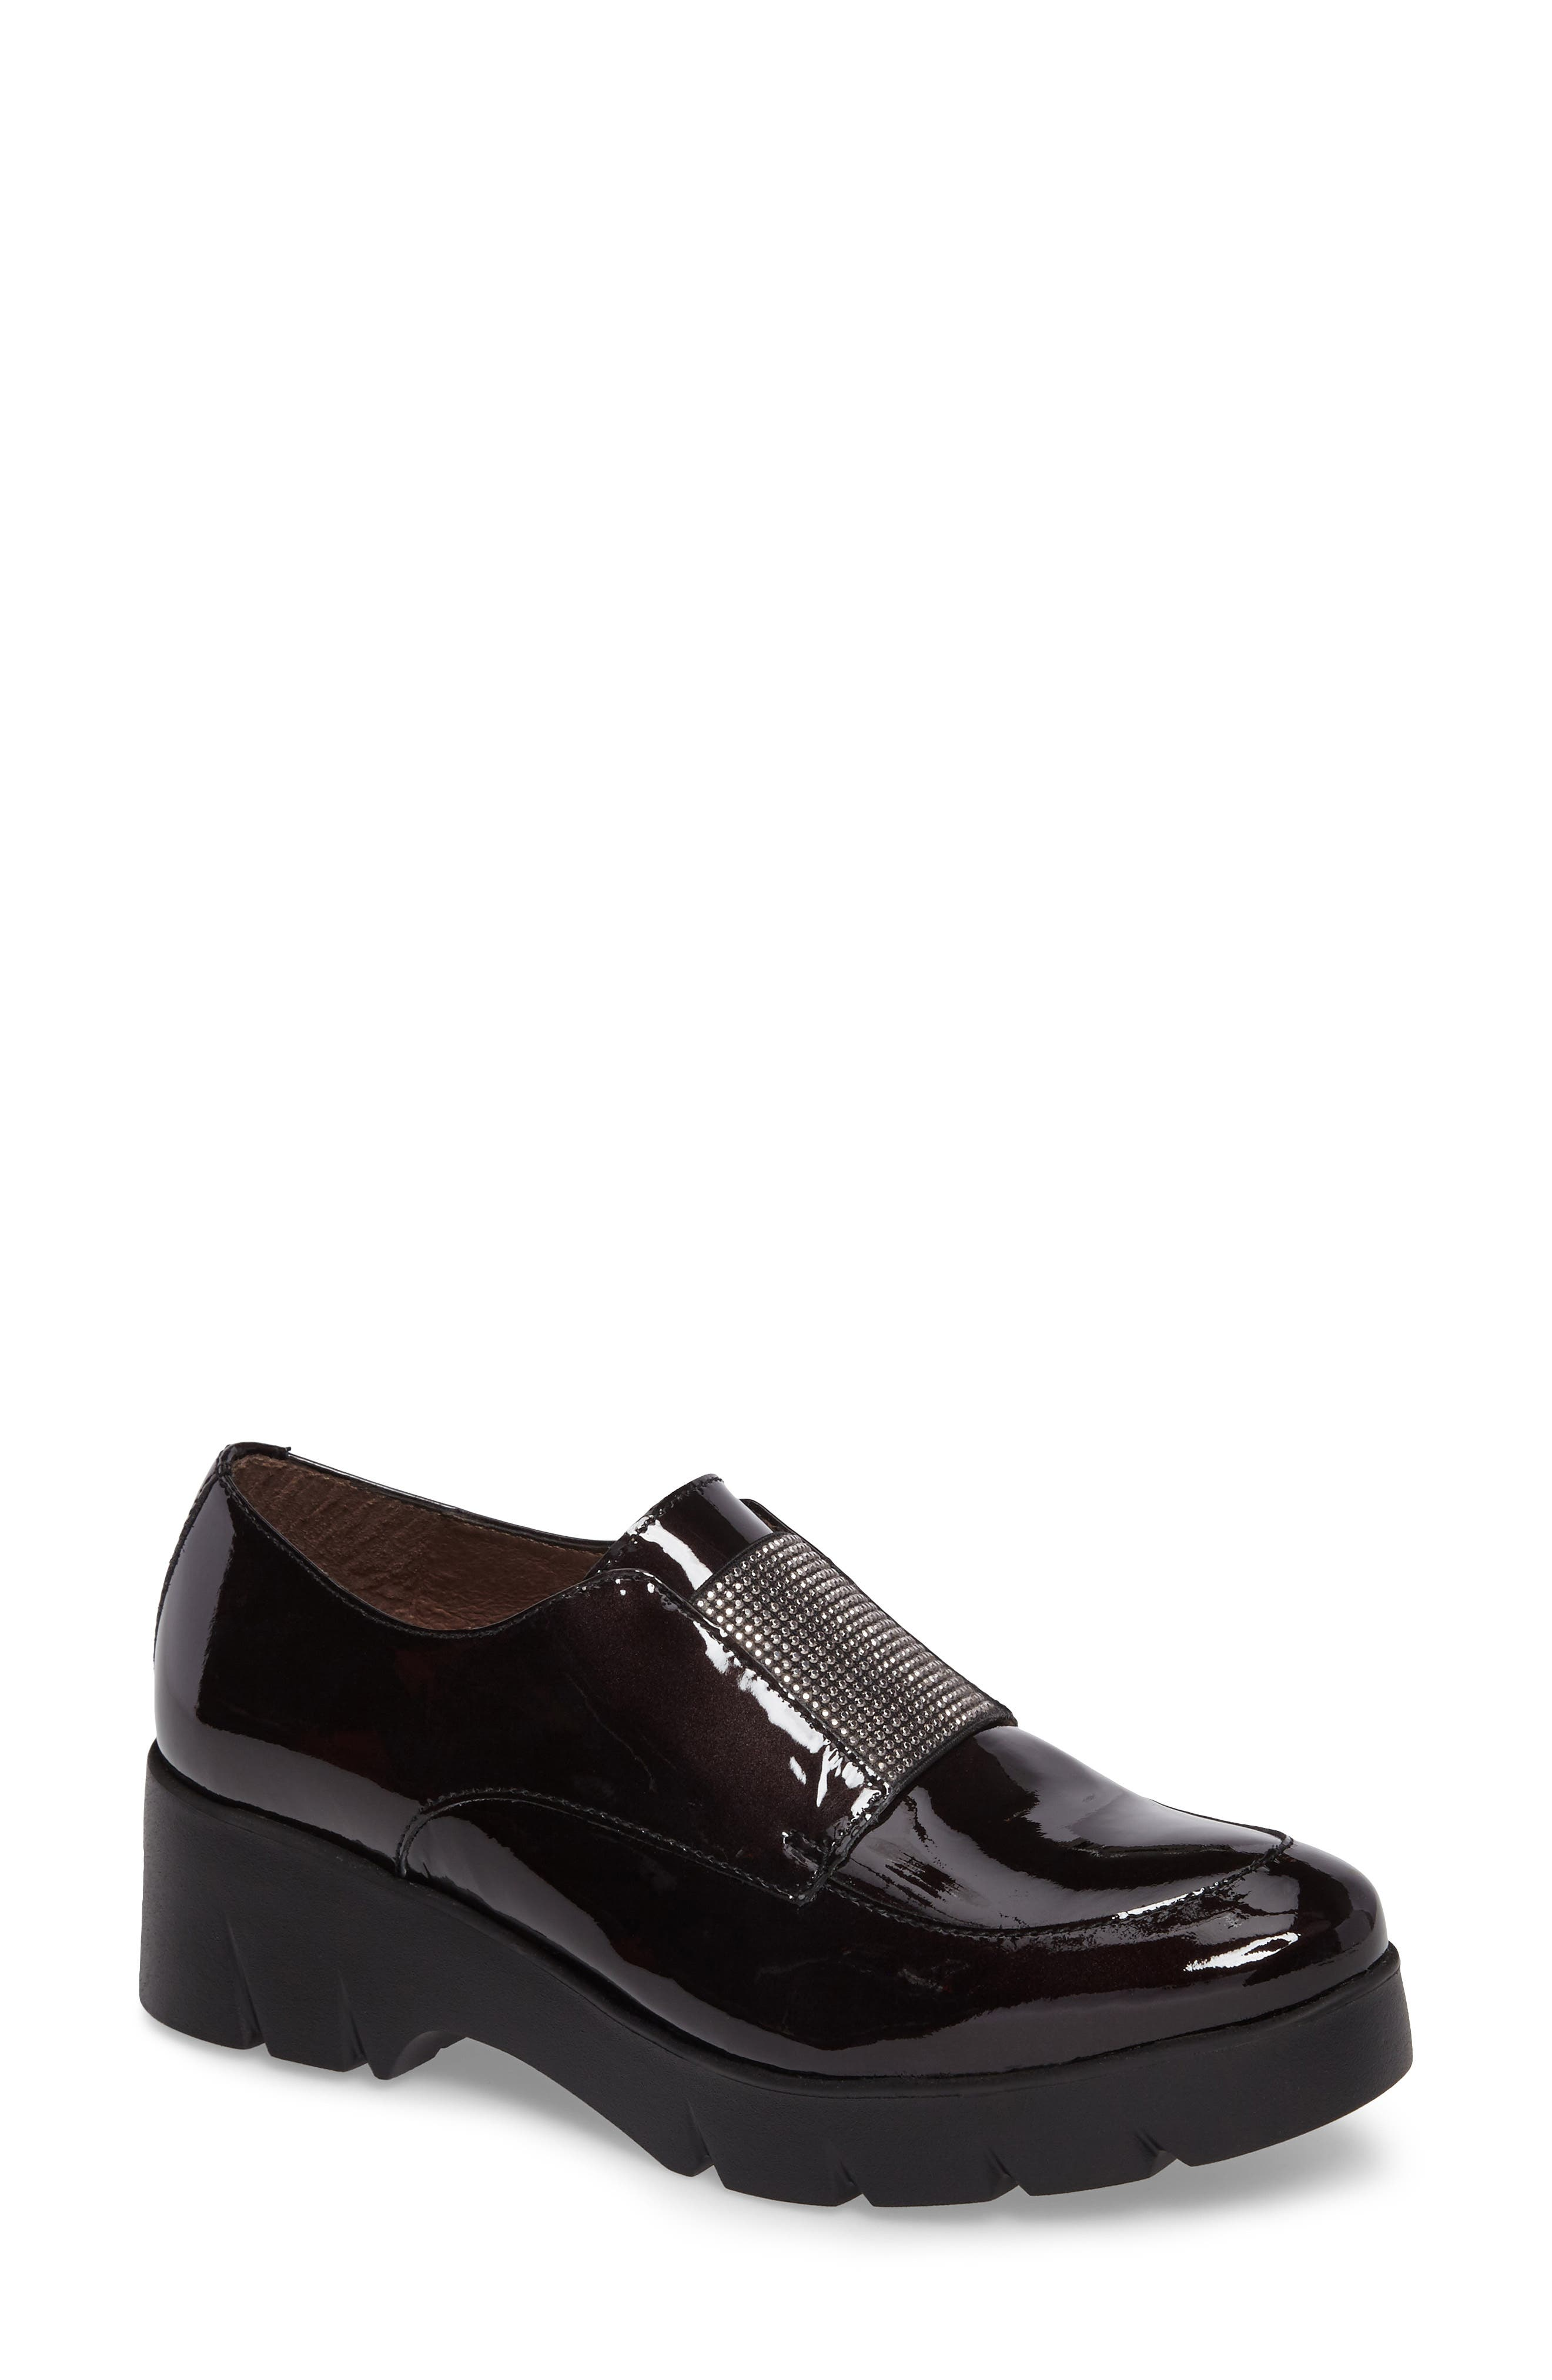 Main Image - Wonders Loafer Flat